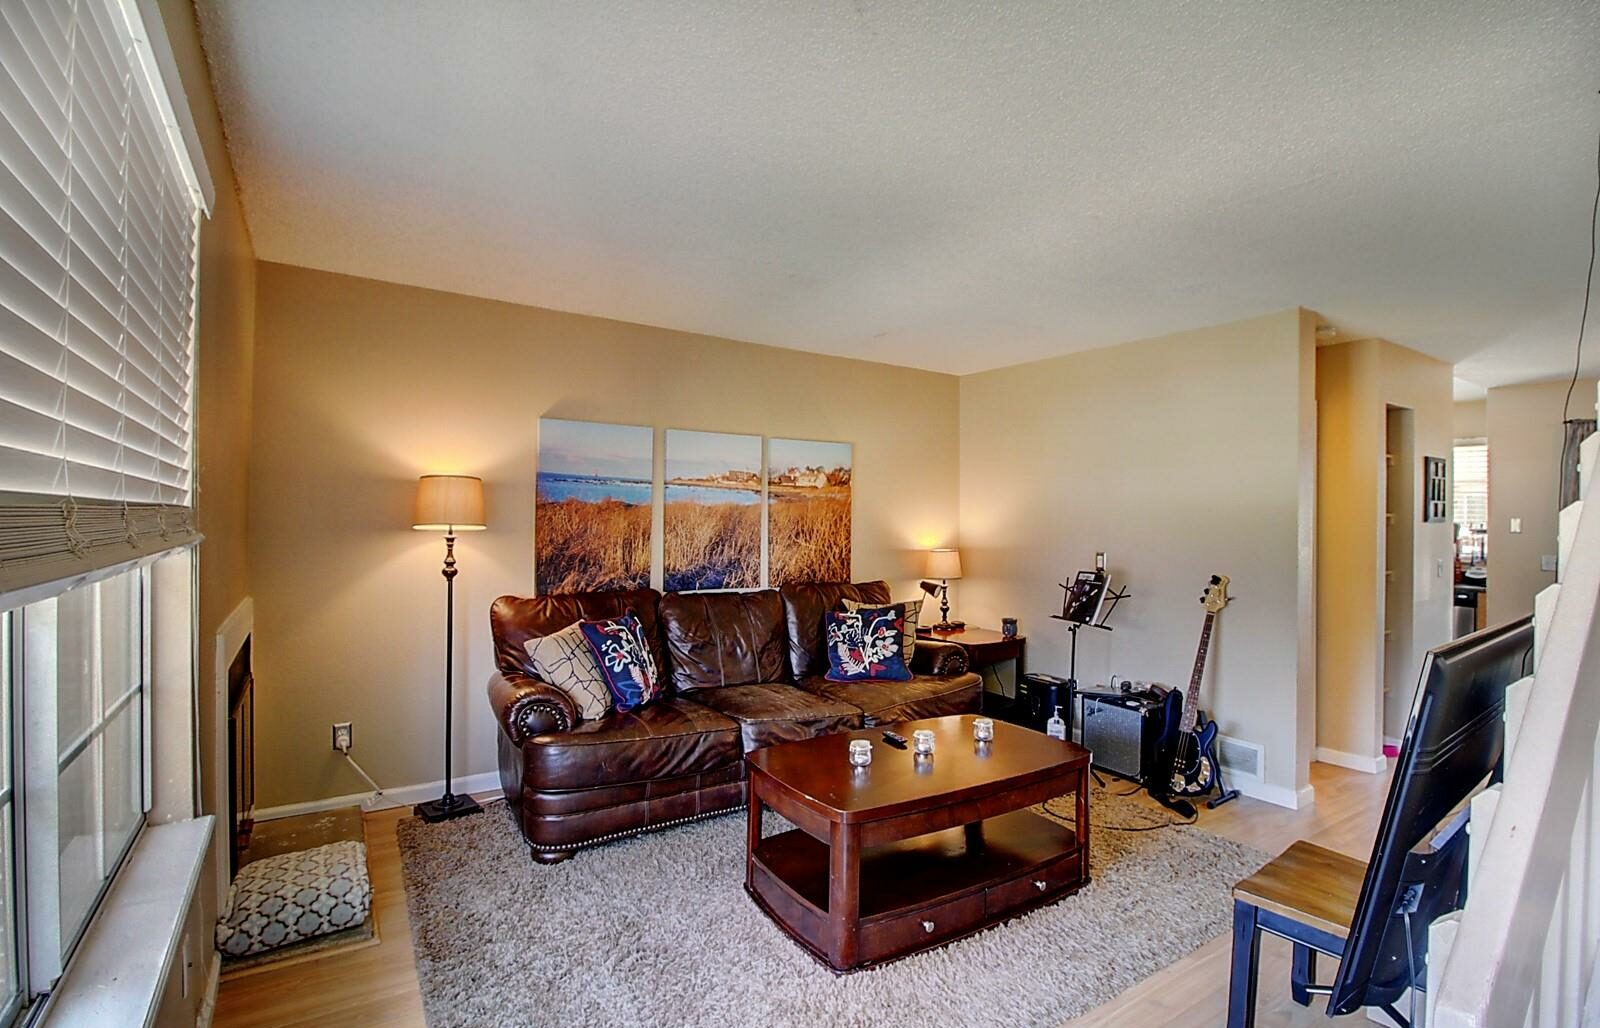 condos for rent in braintree ma